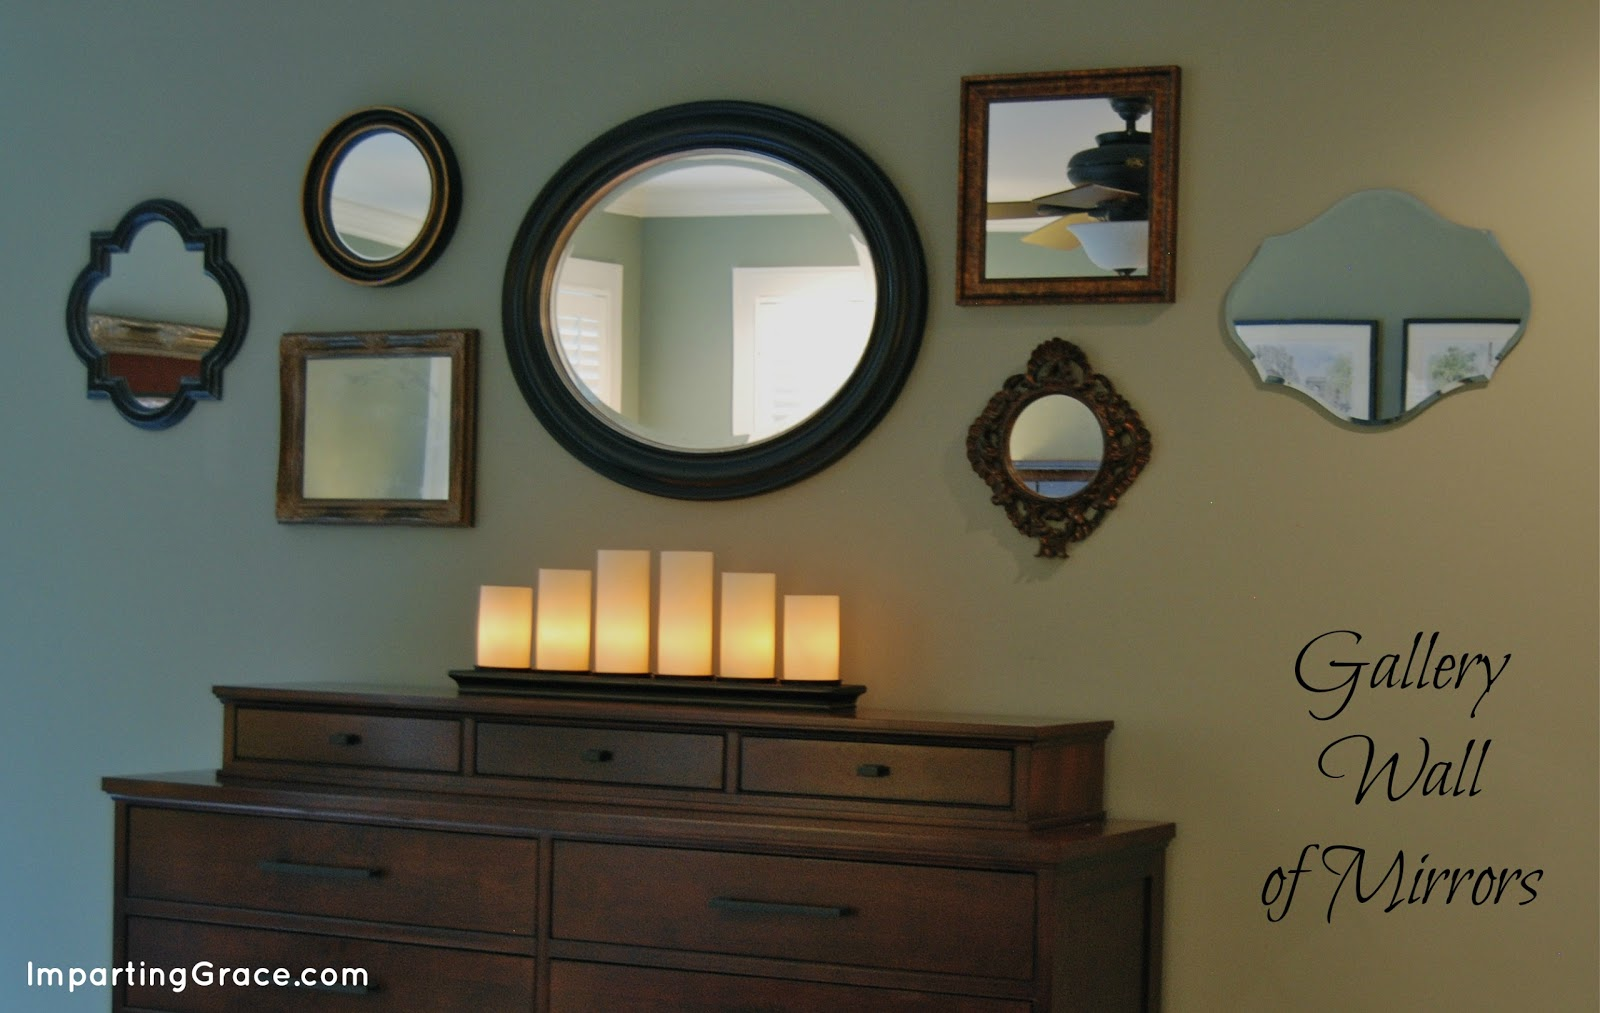 Imparting Grace: Gallery Wall of Mirrors